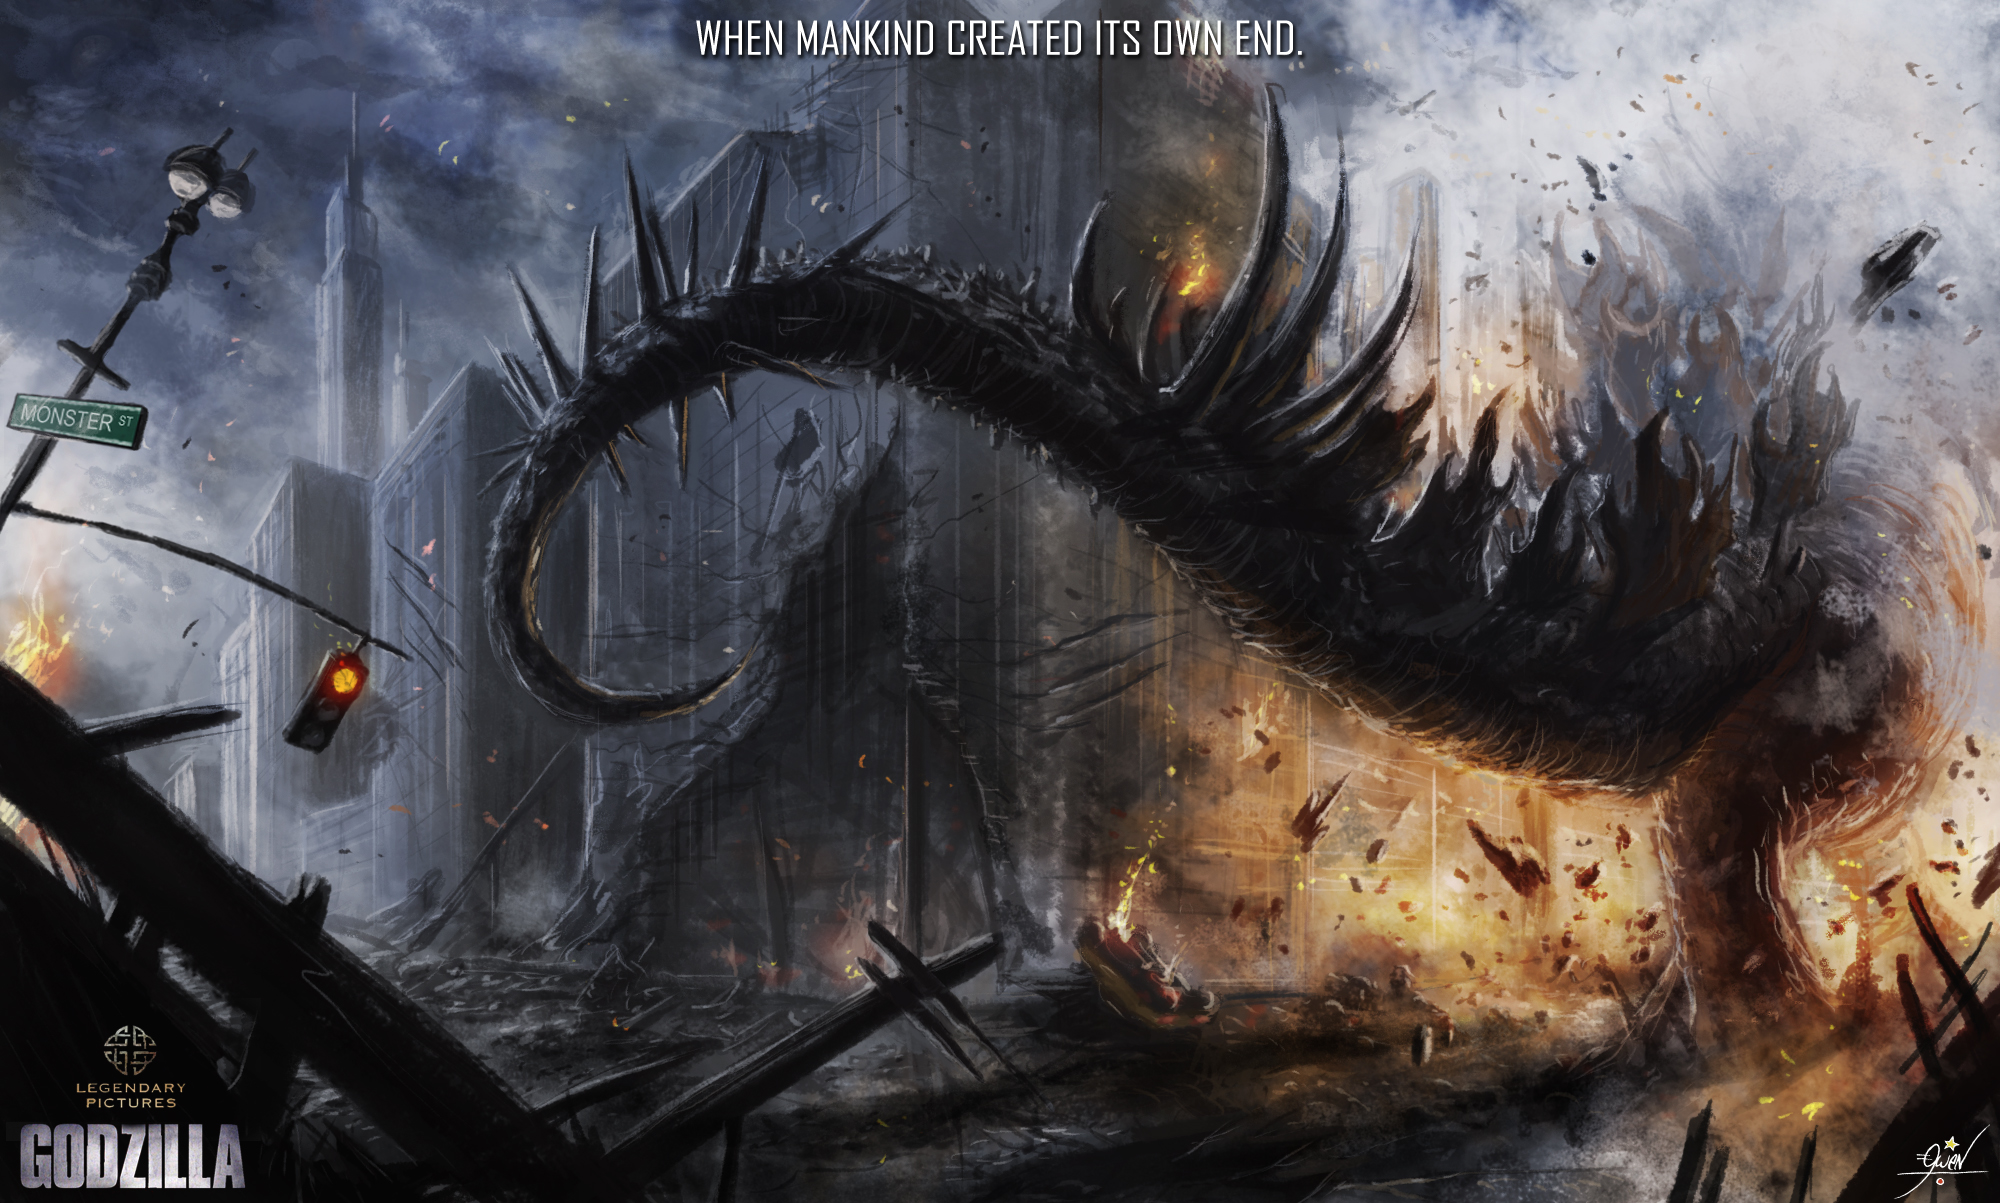 Godzilla 2014 Illustration Movie HD Wallpaper Godzilla 2014 2000x1203